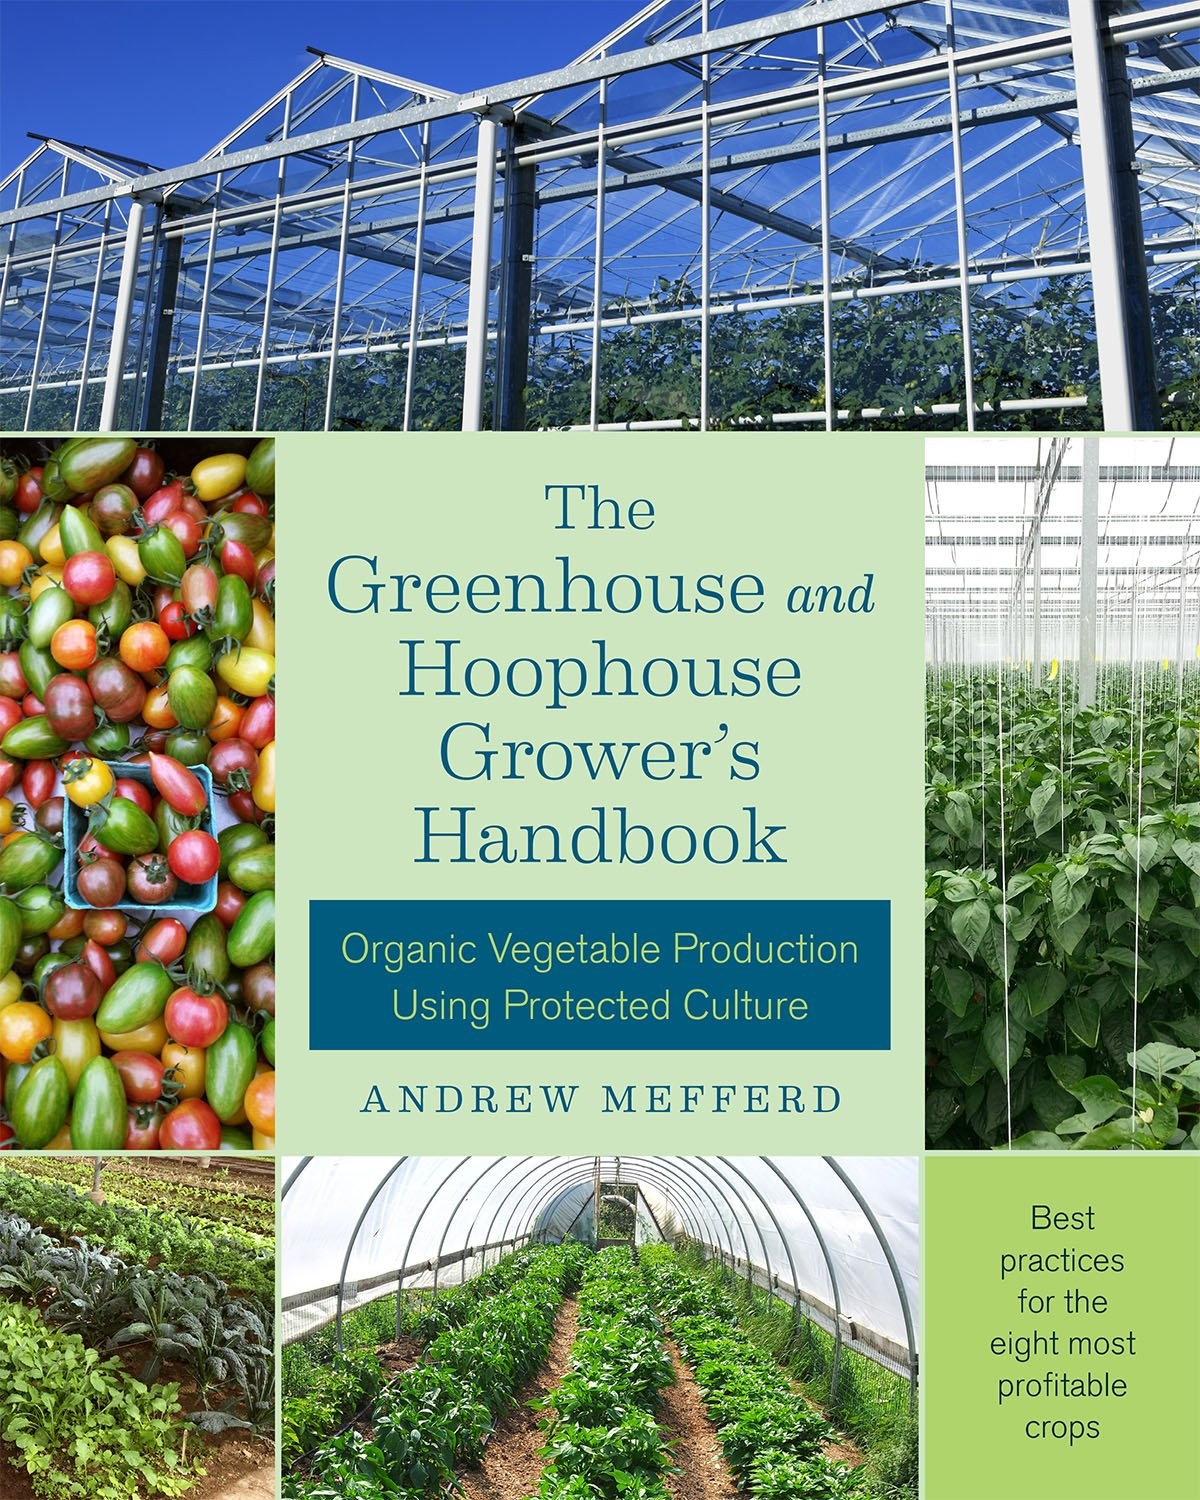 The Greenhouse And Hoophouse Grower S Handbook Organic Vegetable Production Using Protected Culture